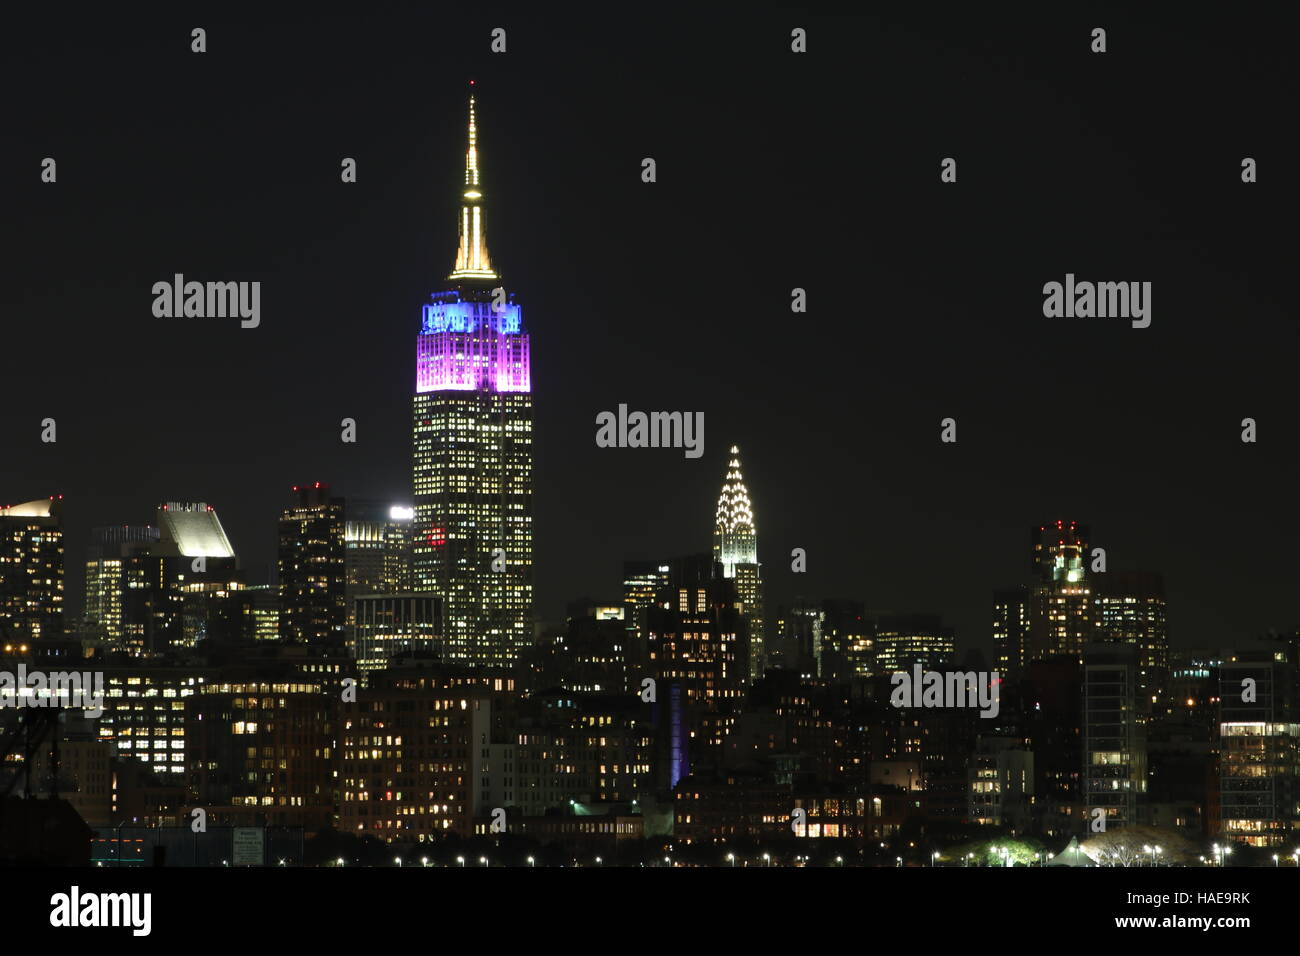 Empire State building with Chrysler building at night, New York - Stock Image